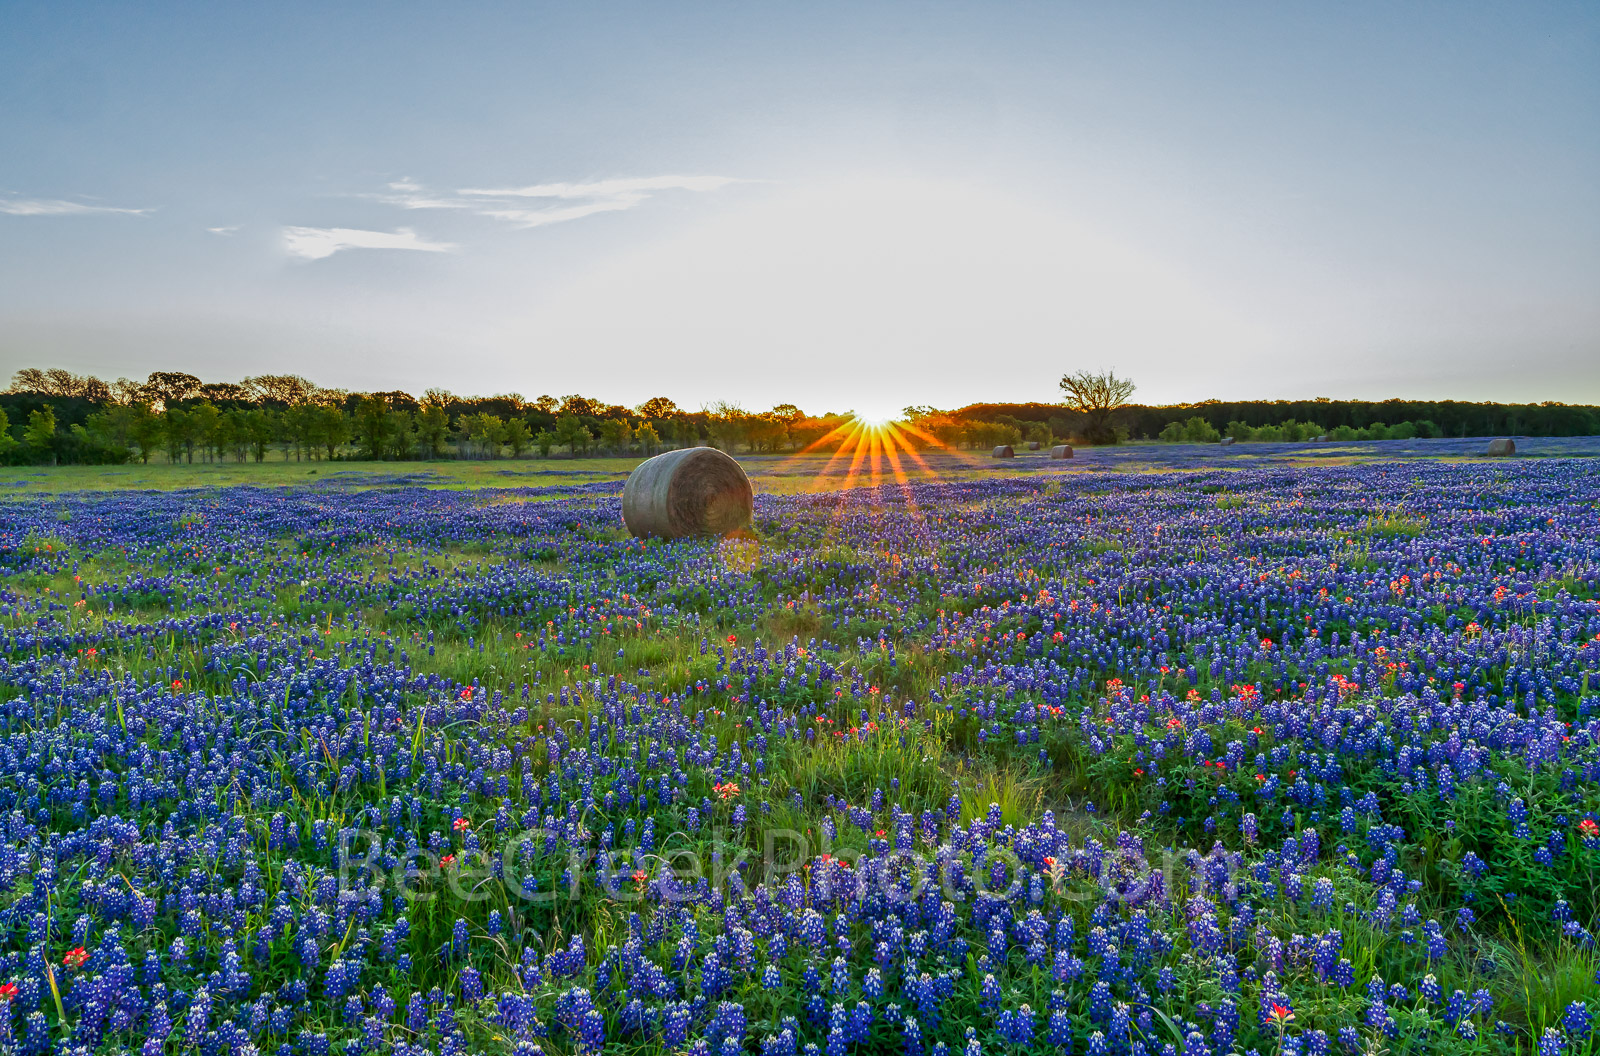 Texas bluebonnets, hay bales, sunrise, texas bluebonnet wildflowers, farm, field, rays, sun, indian paintbrush, pop of red, light, rural texas, hay,